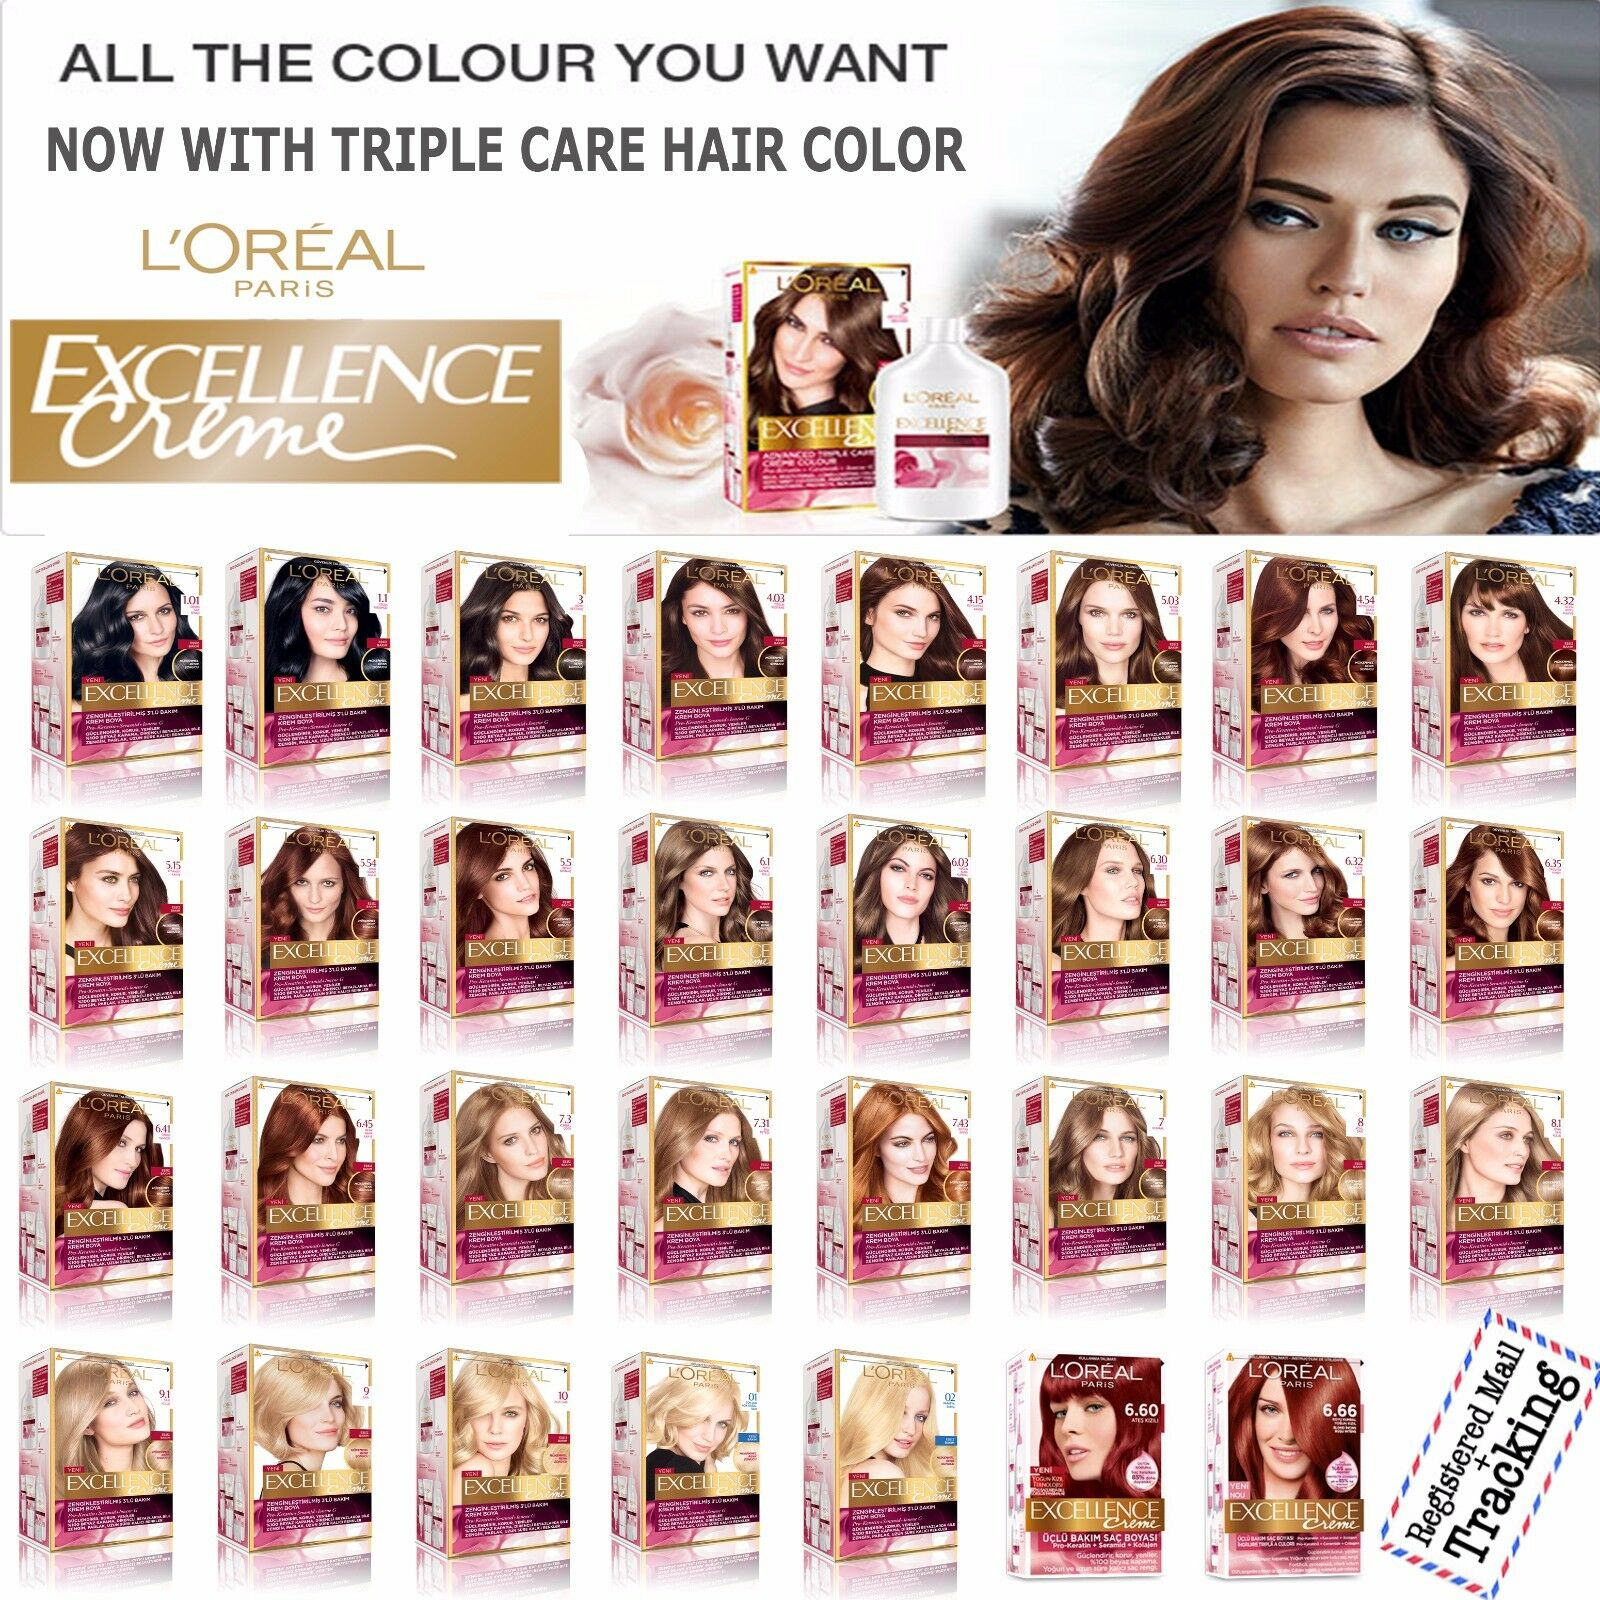 Loreal excellence creme haircolor color chart rachael edwards of l39oreal paris excellence creme triple care hair color 31 different sh geenschuldenfo Images